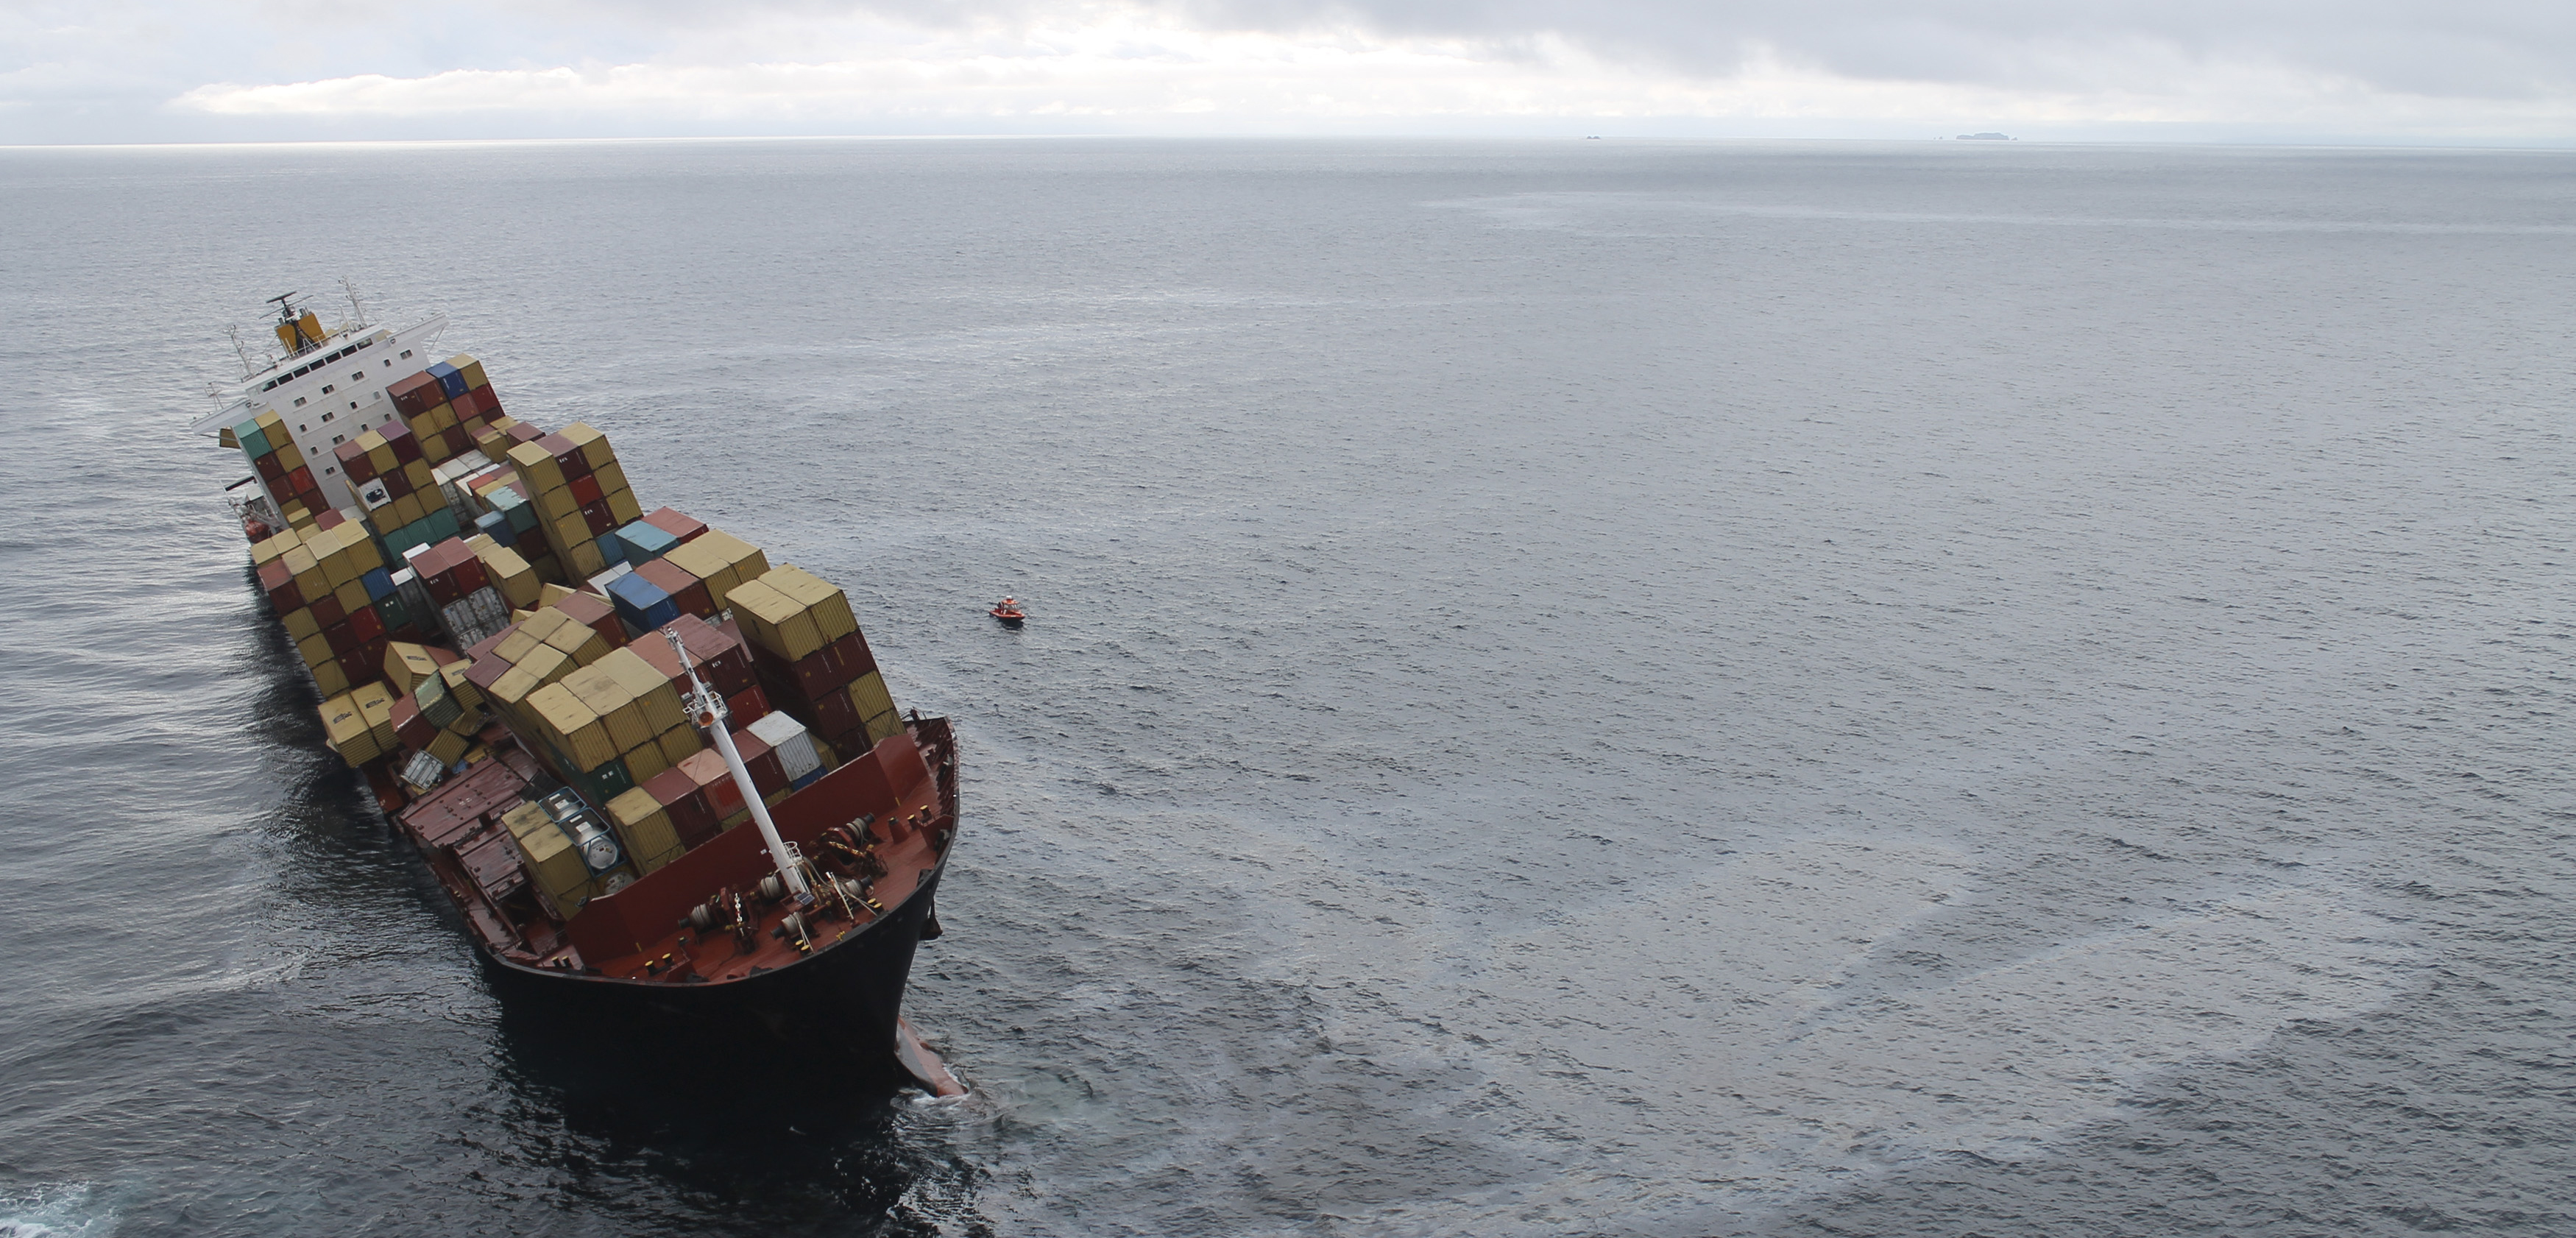 The container ship Rena spilled 350 tonnes of oil into the water off New Zealand after it ran aground on the Astrolabe reef in 2011. Photo by HO/Reuters/Corbis